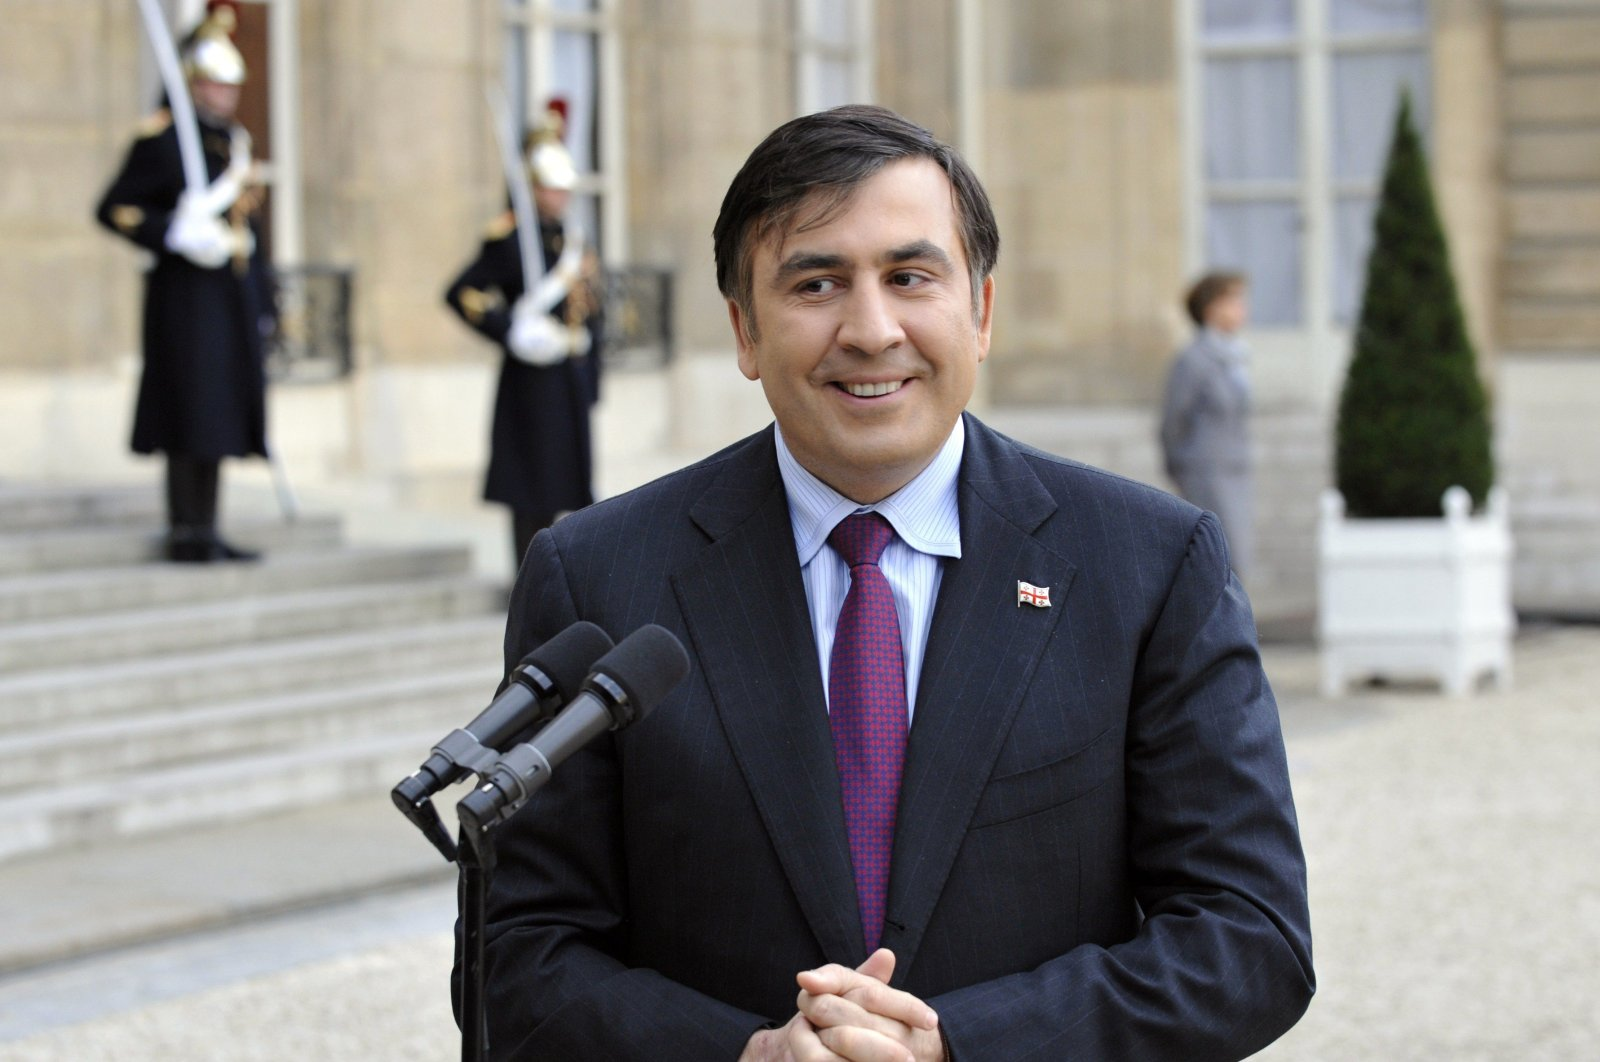 A file photo shows former Georgian President Mikheil Saakashvili addressing journalists after a bilateral meeting with his French counterpart at the Elysee Palace in Paris, France, Nov. 13, 2008. (AFP Photo)